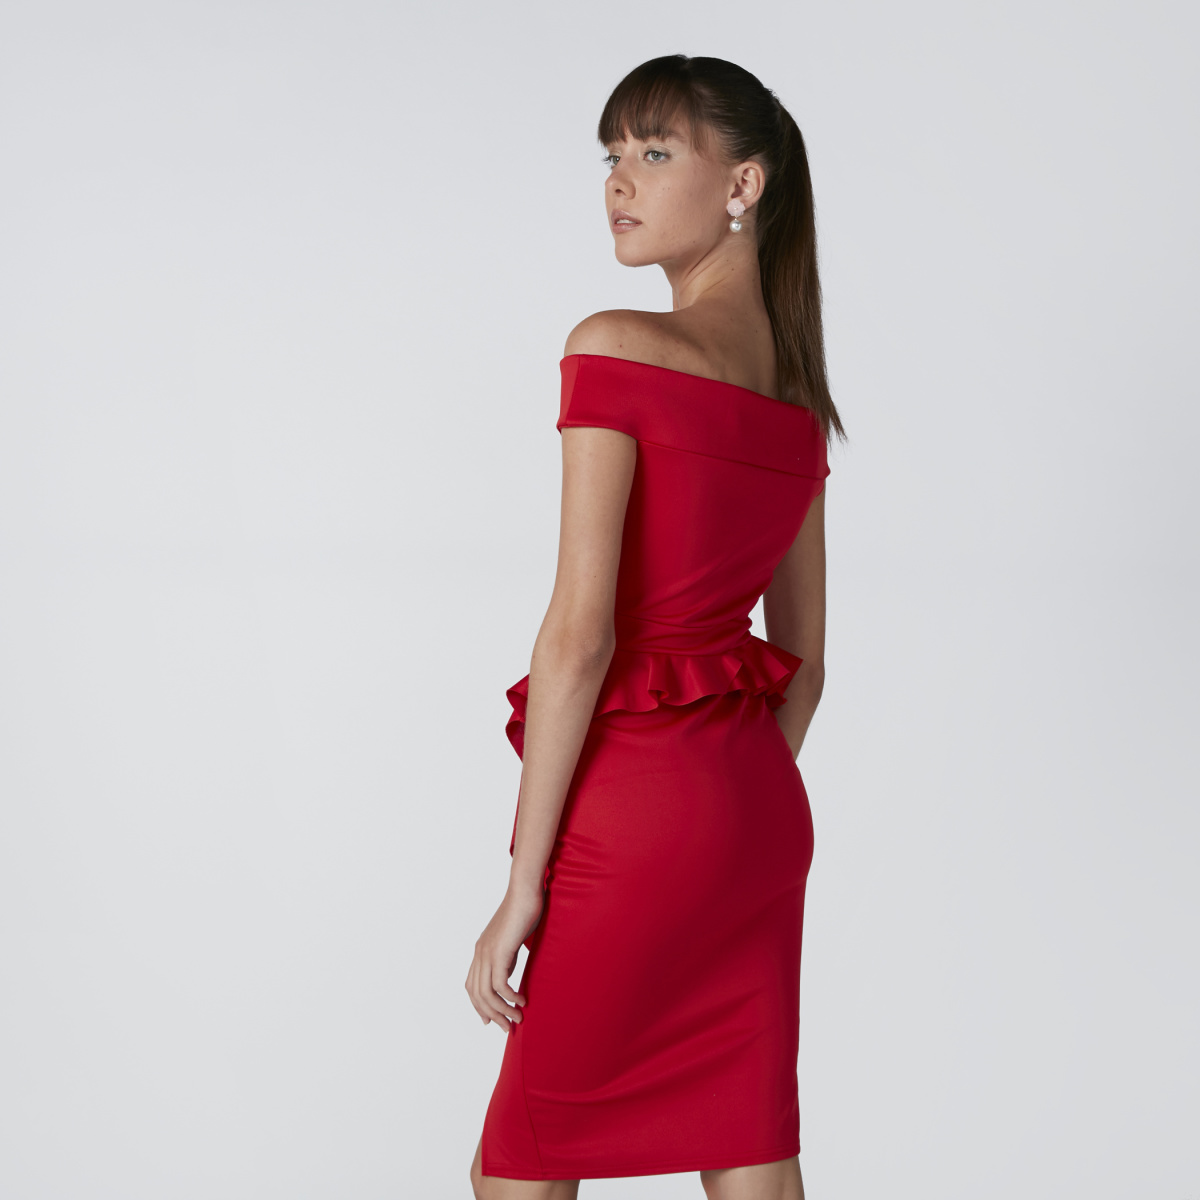 Woman in red off-shoulder peplum dress